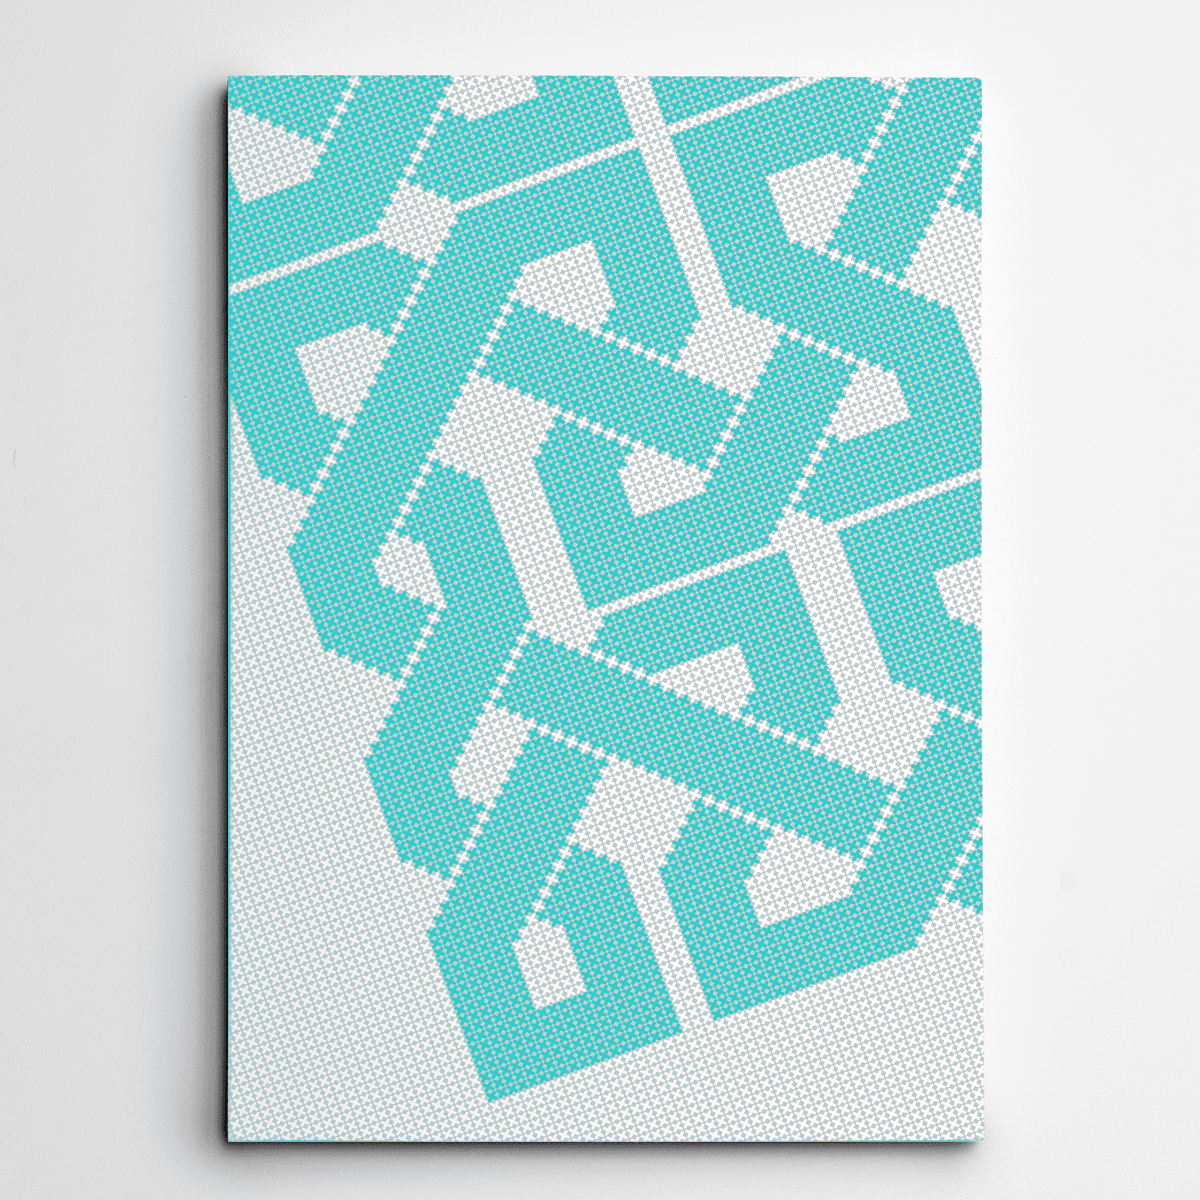 Azure Canvas Art,canvas wall prints,Grid Pattern,Yislamoo,Blue